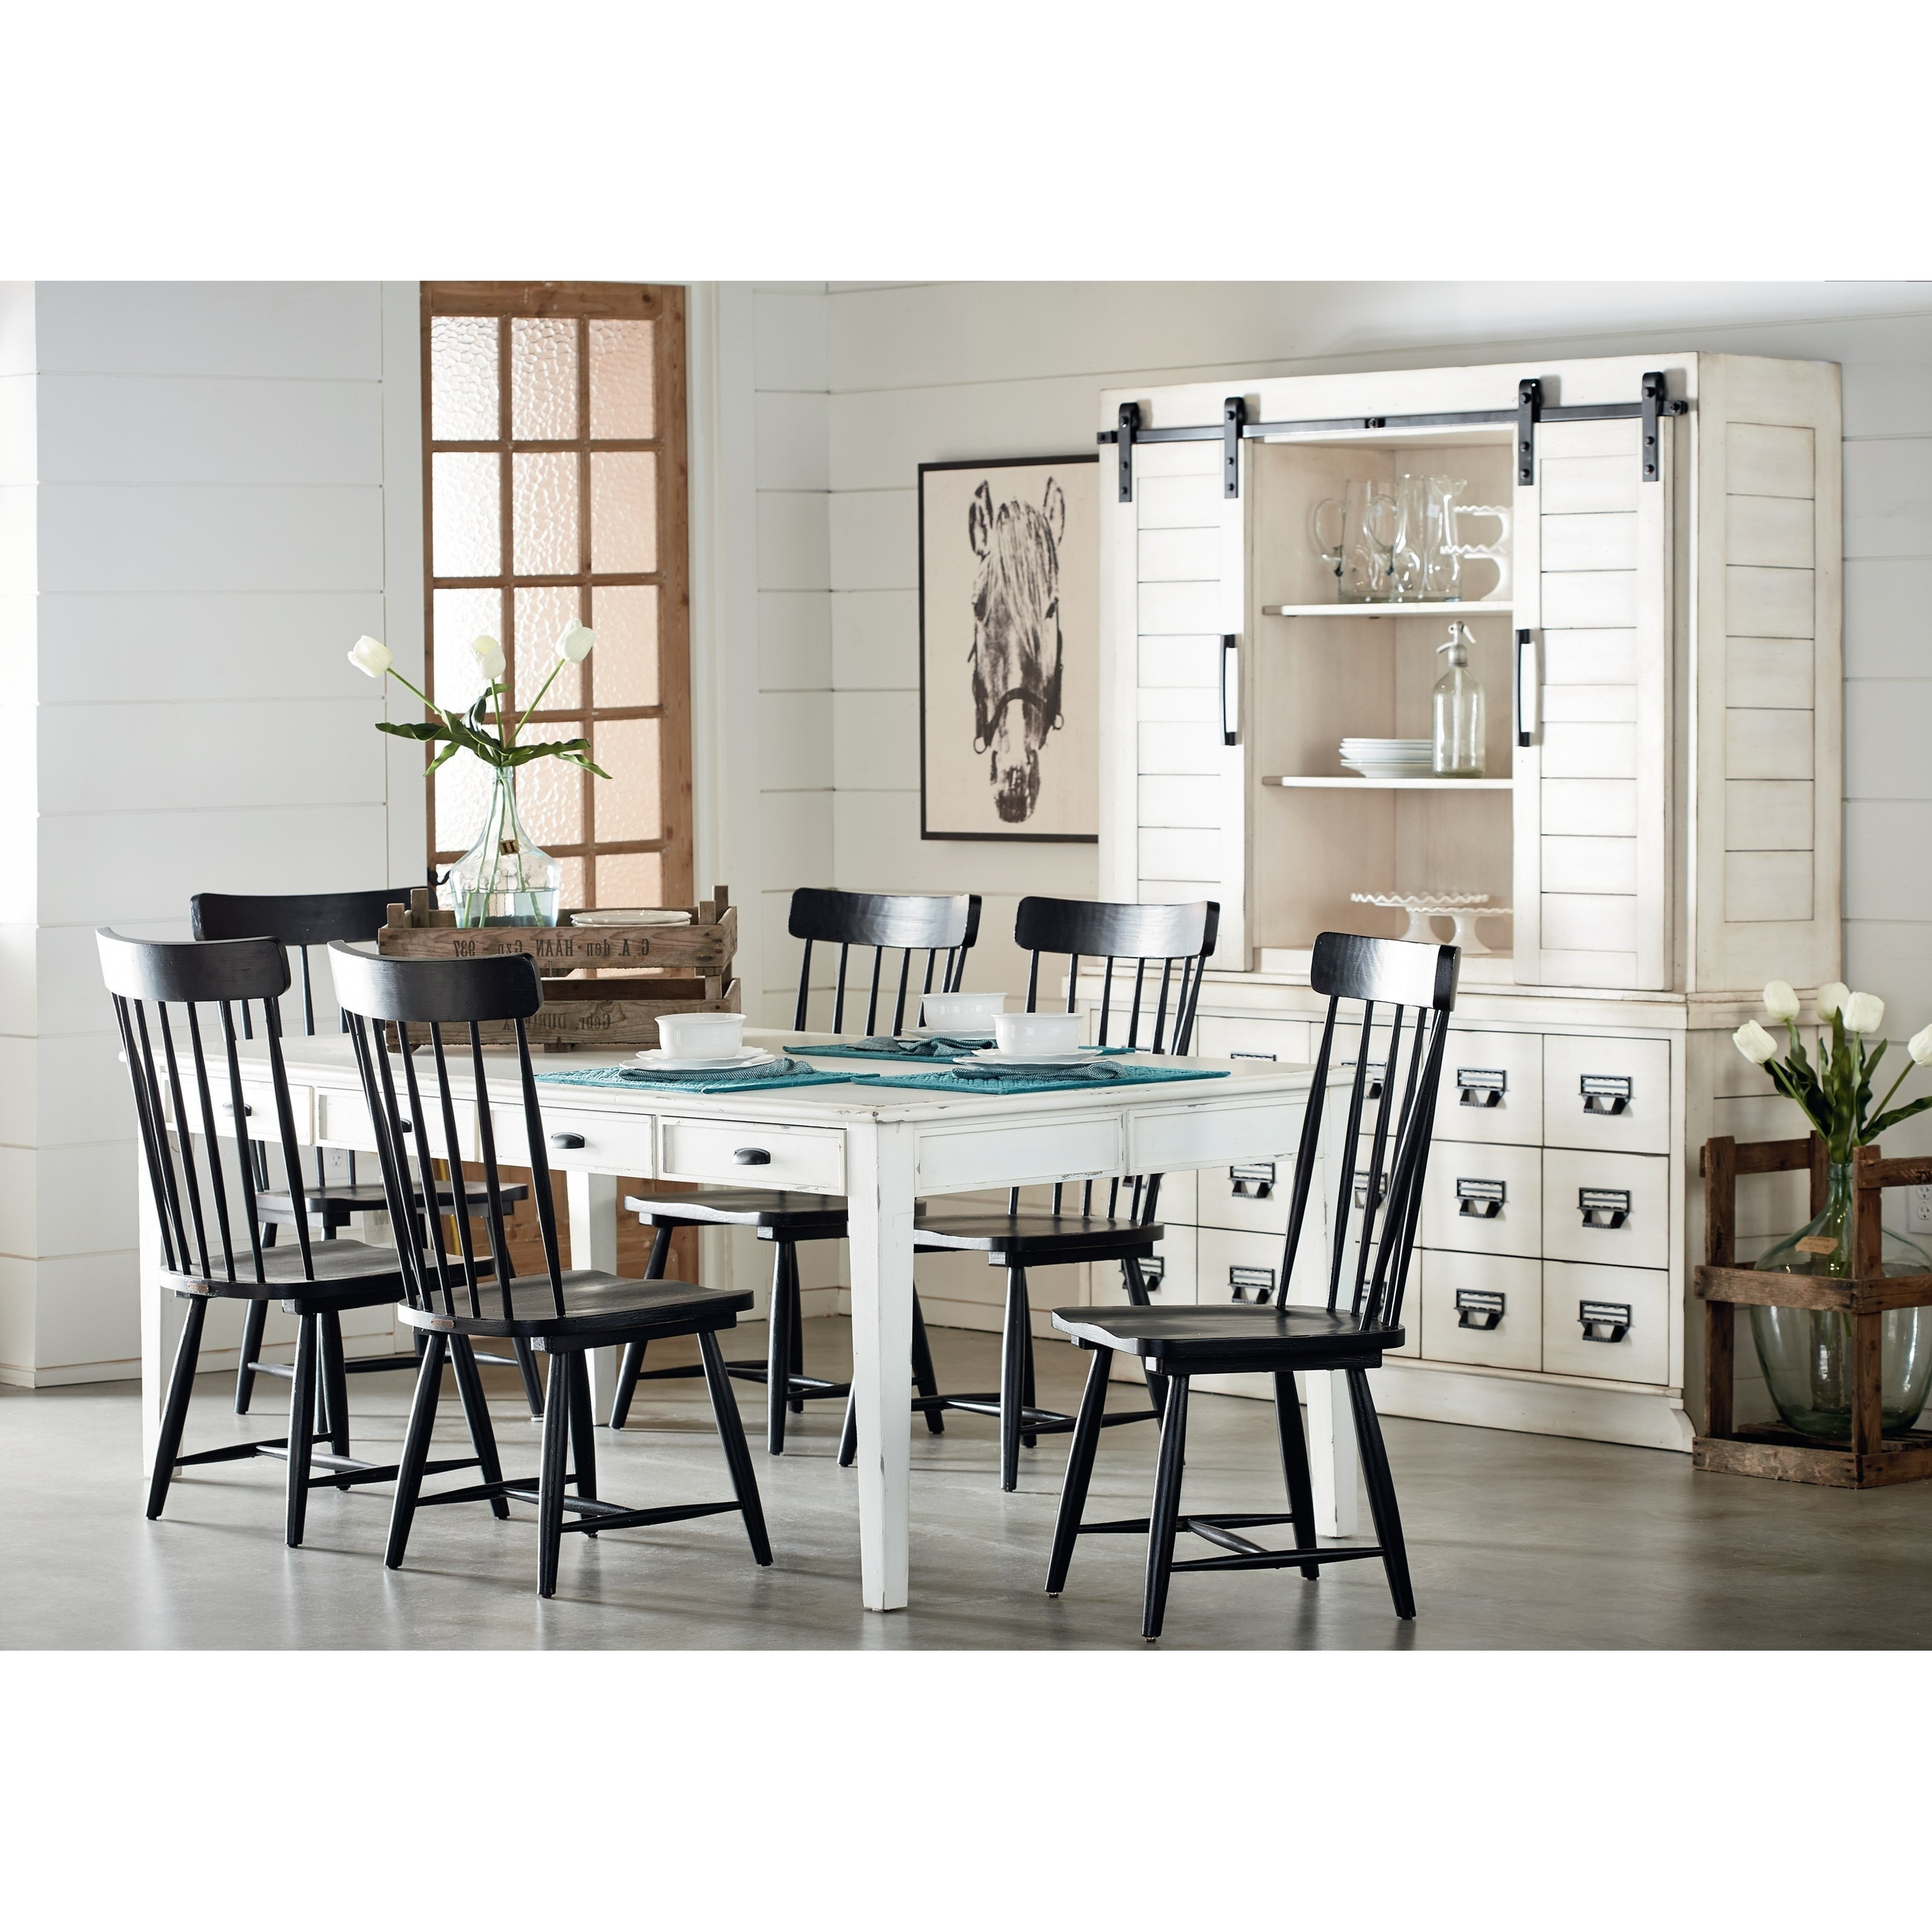 Kitchen Dining Group With 7' Tablemagnolia Homejoanna Gaines Intended For Most Popular Magnolia Home Taper Turned Jo's White Gathering Tables (Gallery 8 of 25)